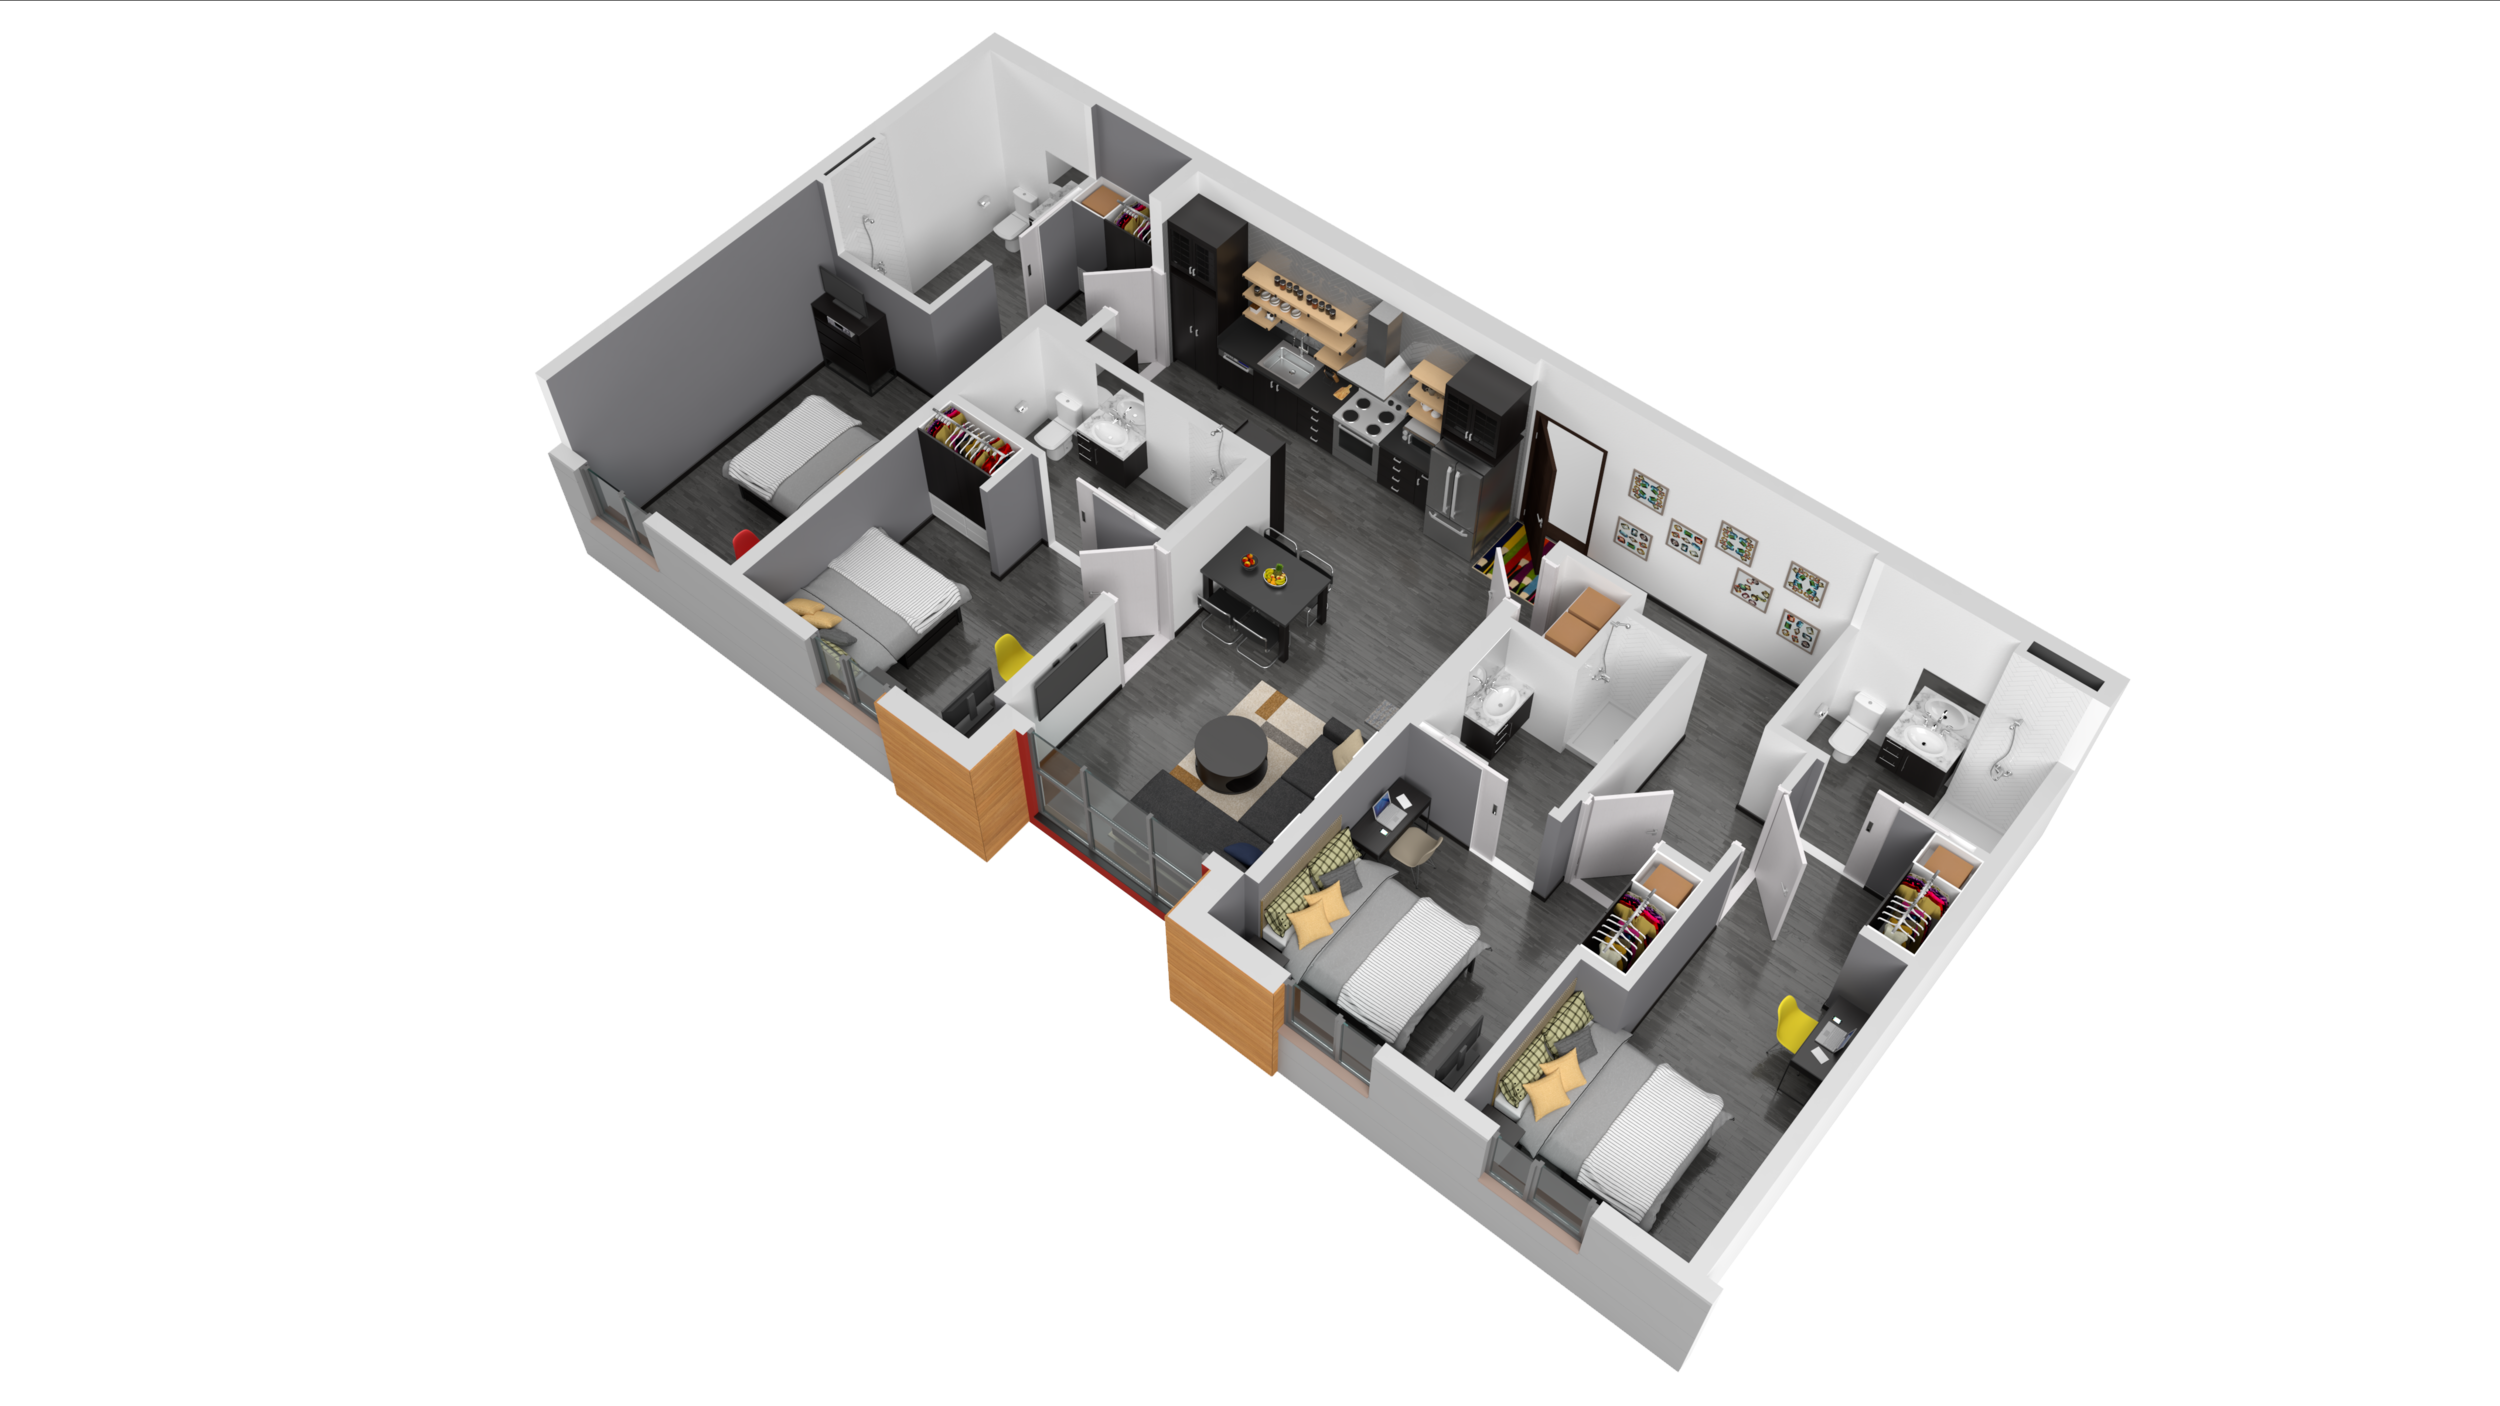 3D Rendering of Harrison Floor Plan